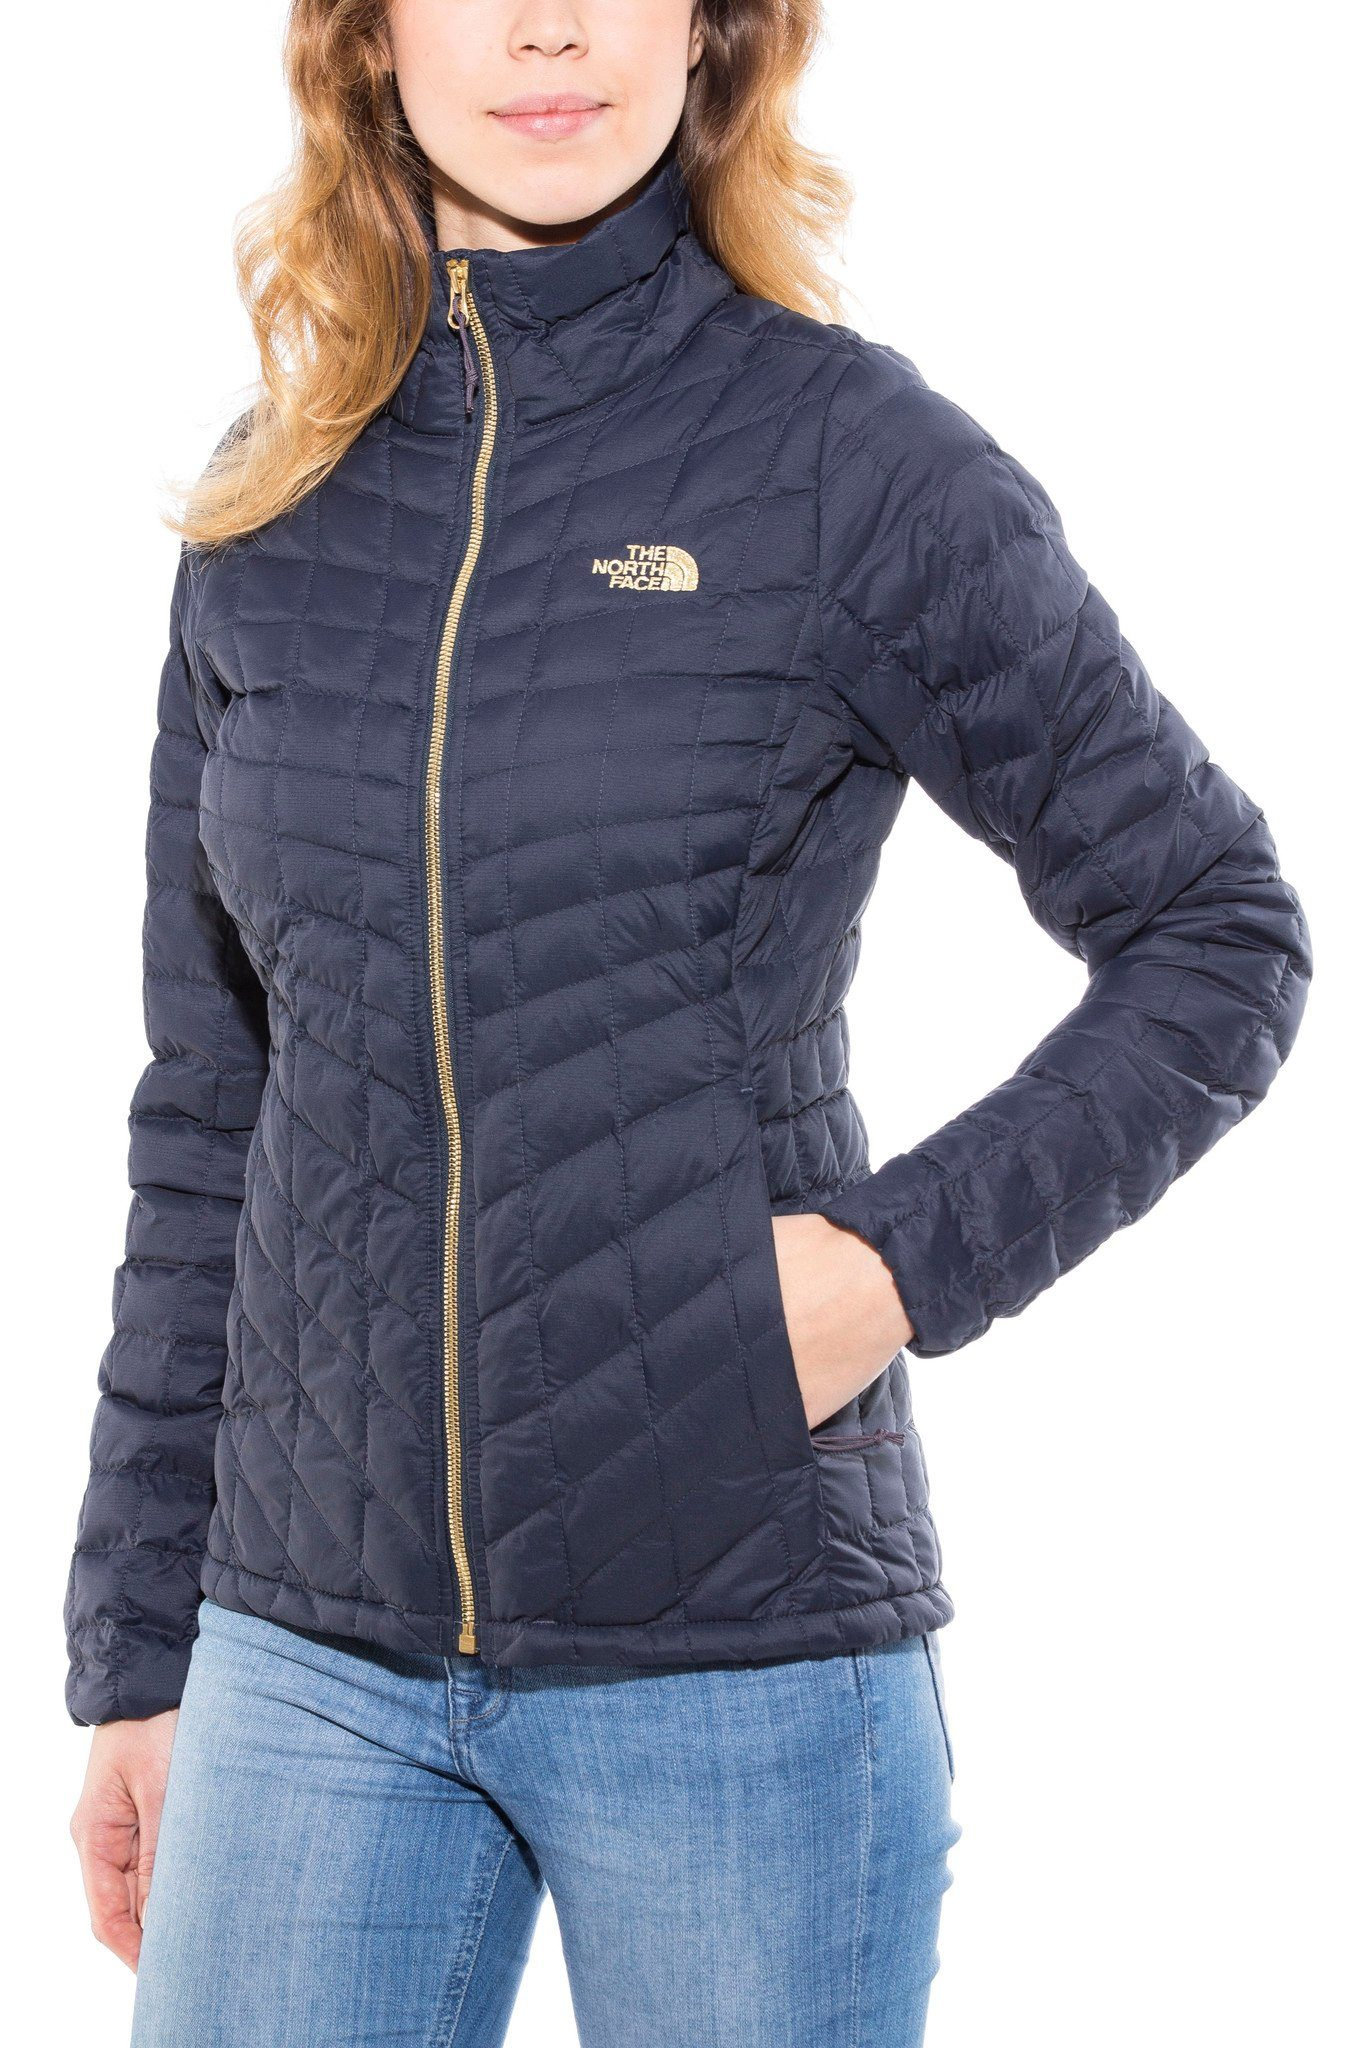 The North Face Outdoorjacke »Thermoball Full Zip Jacket Women«